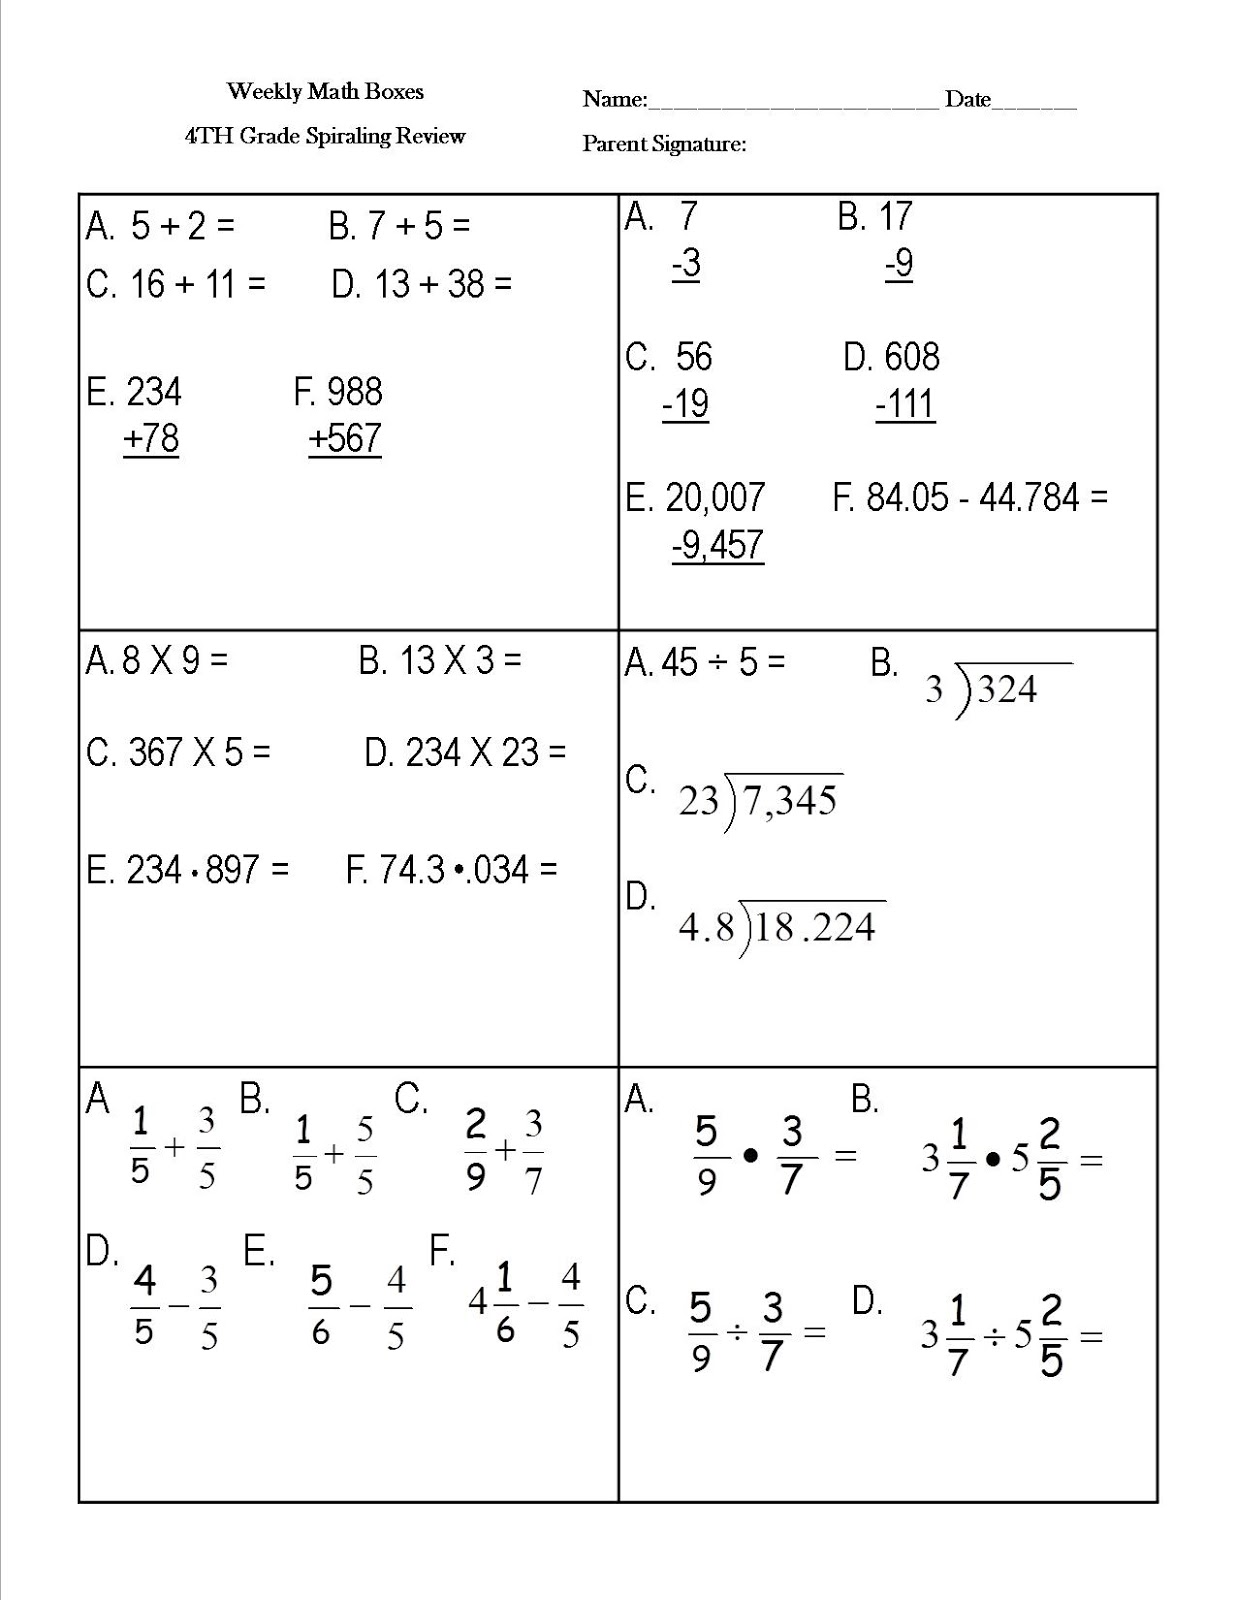 Math Worksheets For Third Grade Students Reading Sage How To Raise Map Math Scores  Nwea Math Test Scores Difference Of Two Squares Worksheet Pdf with Printable French Worksheets Pdf Daily Math Vocabulary Review Math Worksheets For Year 5